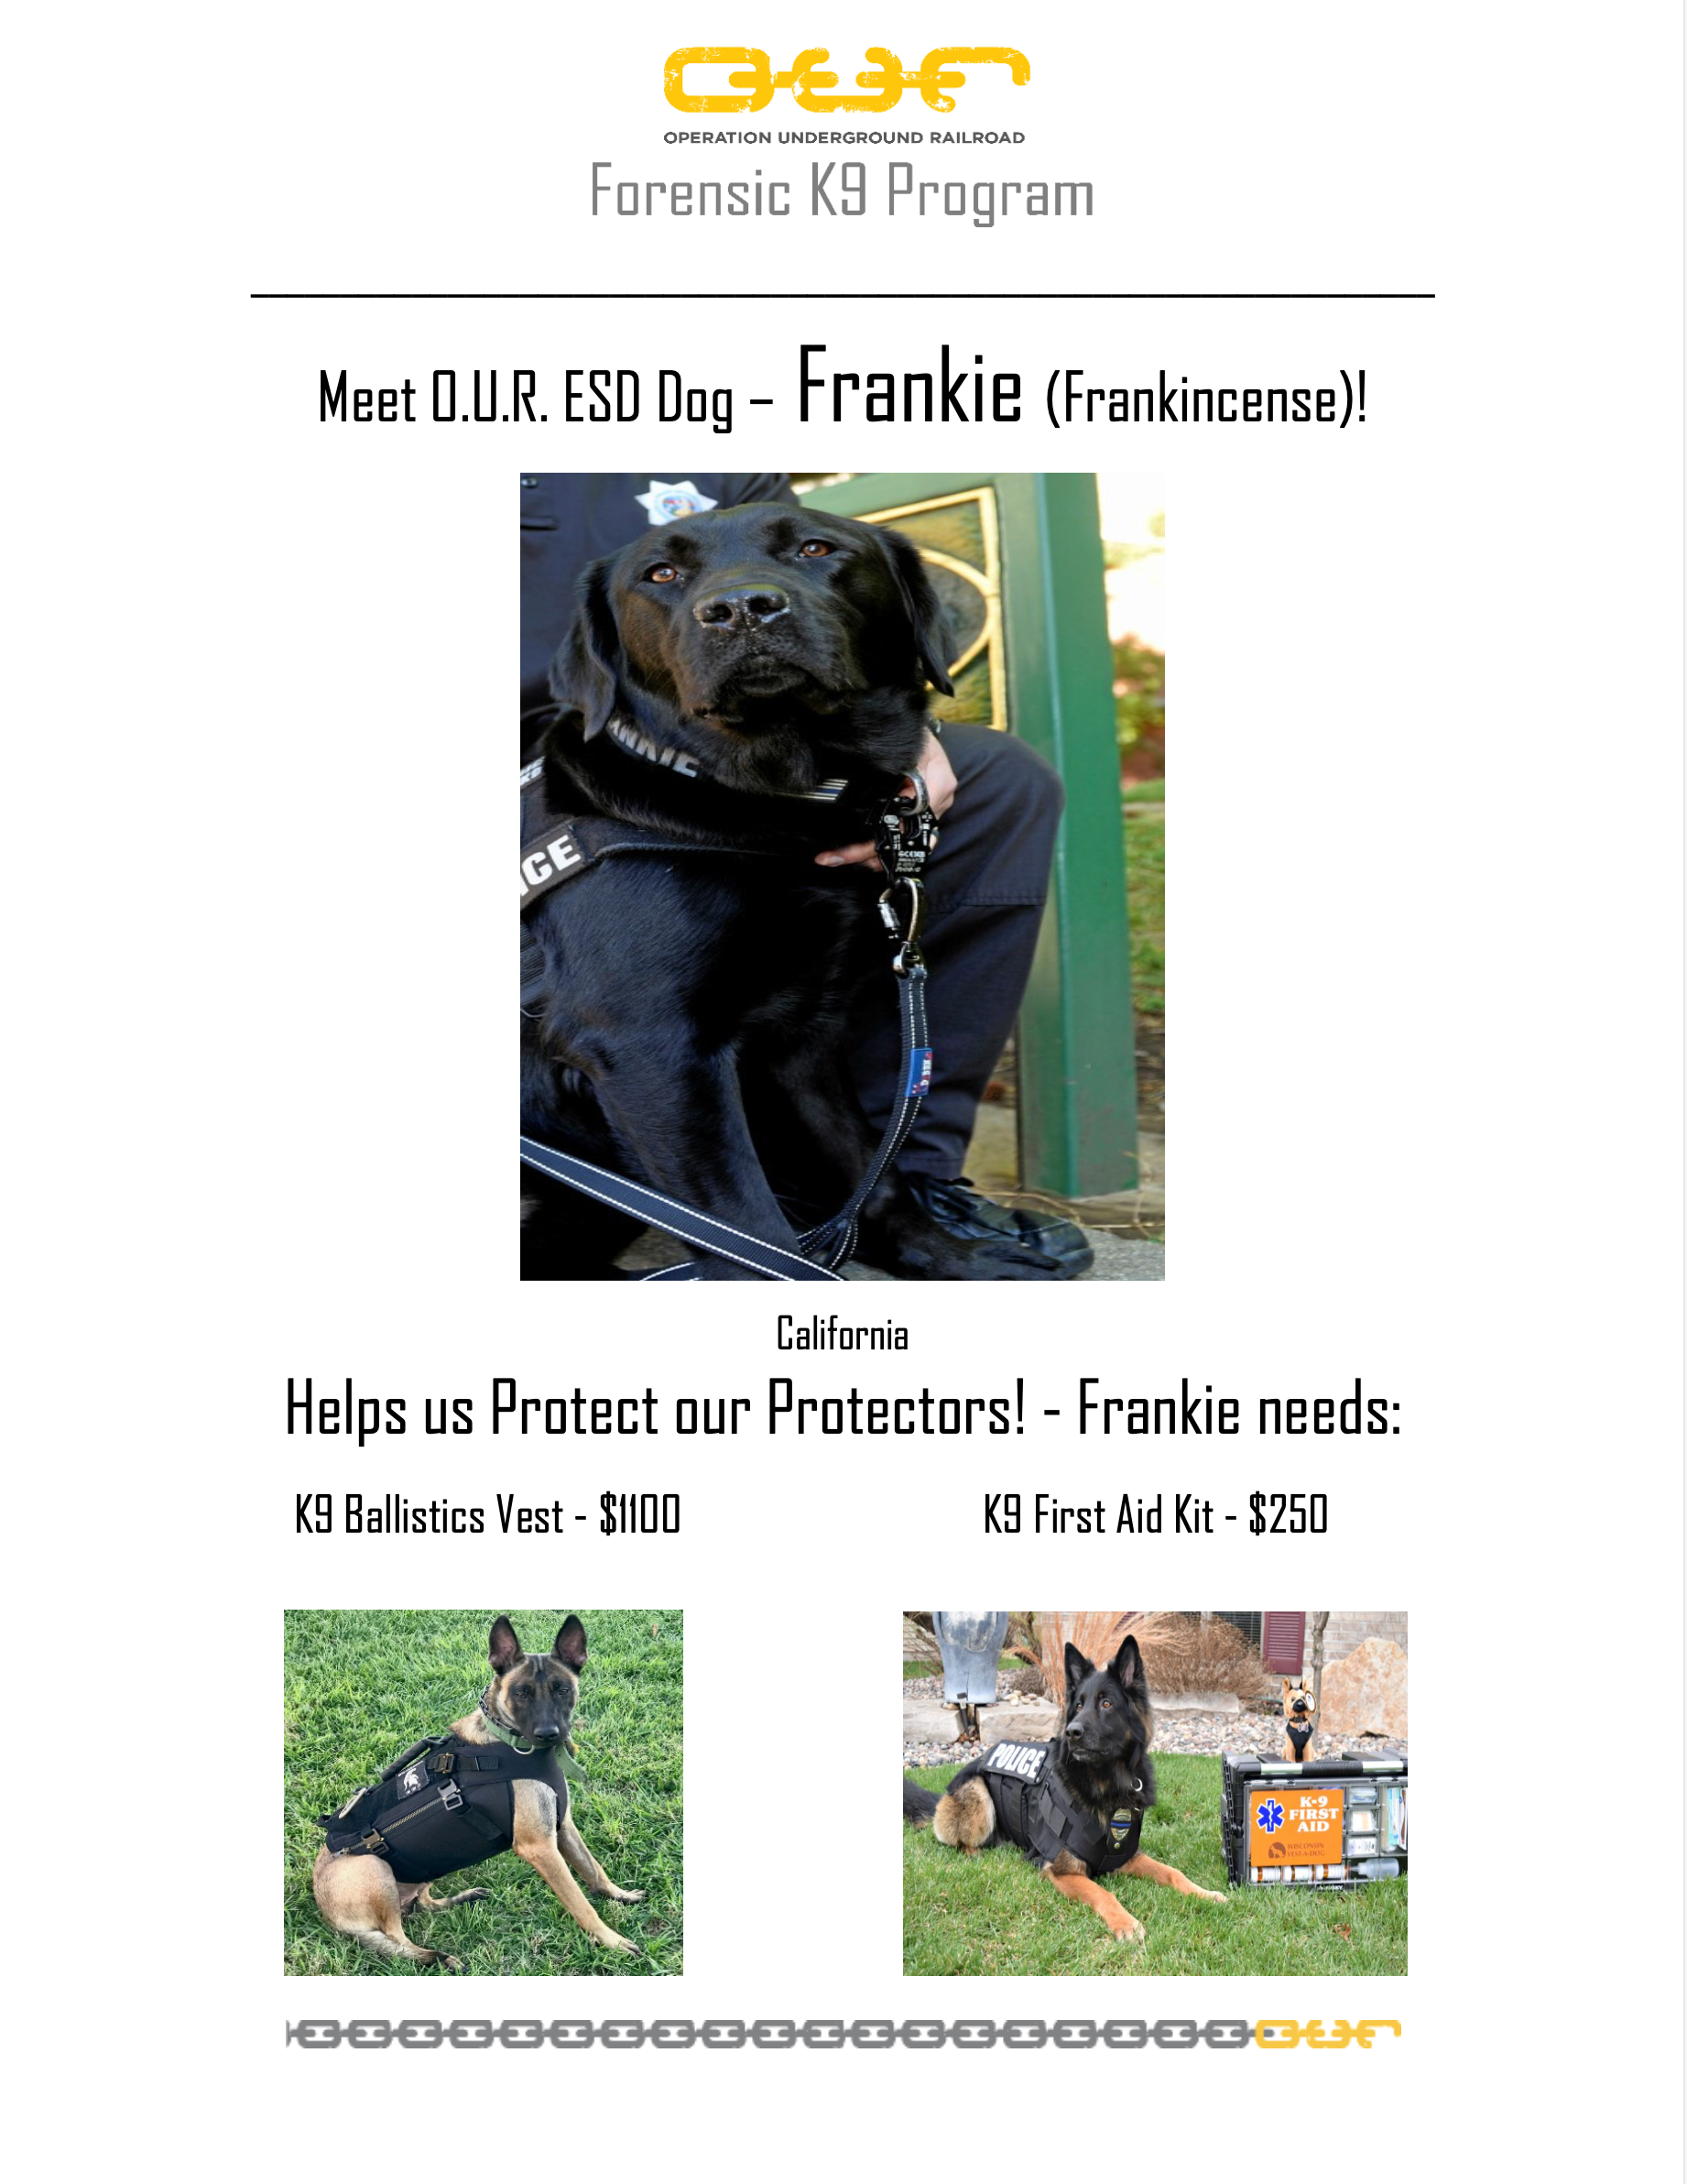 Protect Frankie-Frankincense - Fairfield California